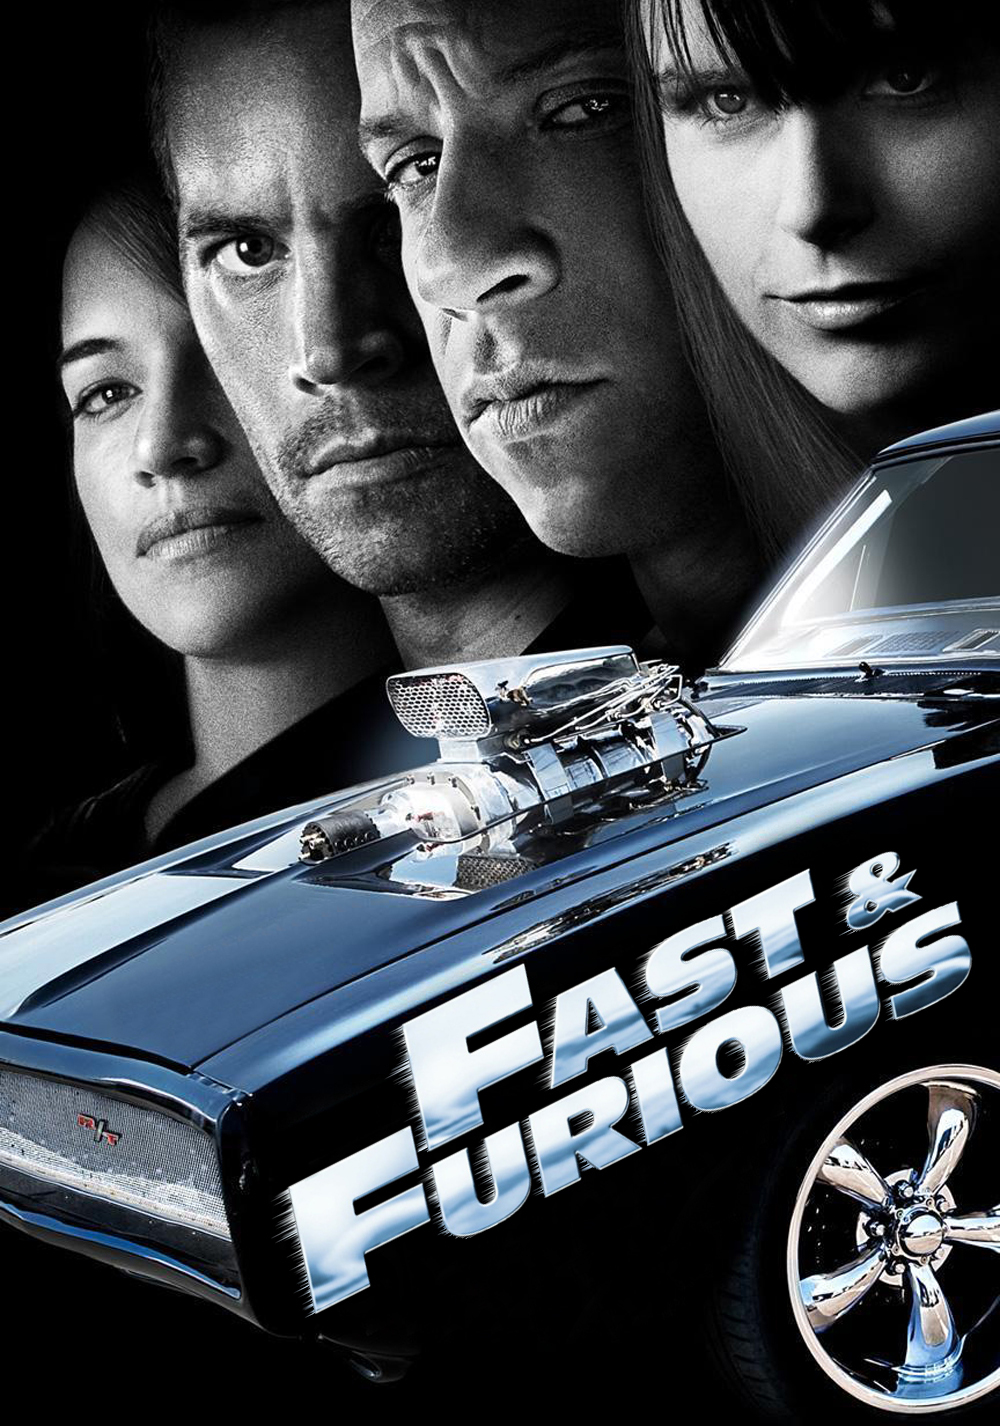 Best movie in the Fast & Furious franchise? - Movies - Fanpop